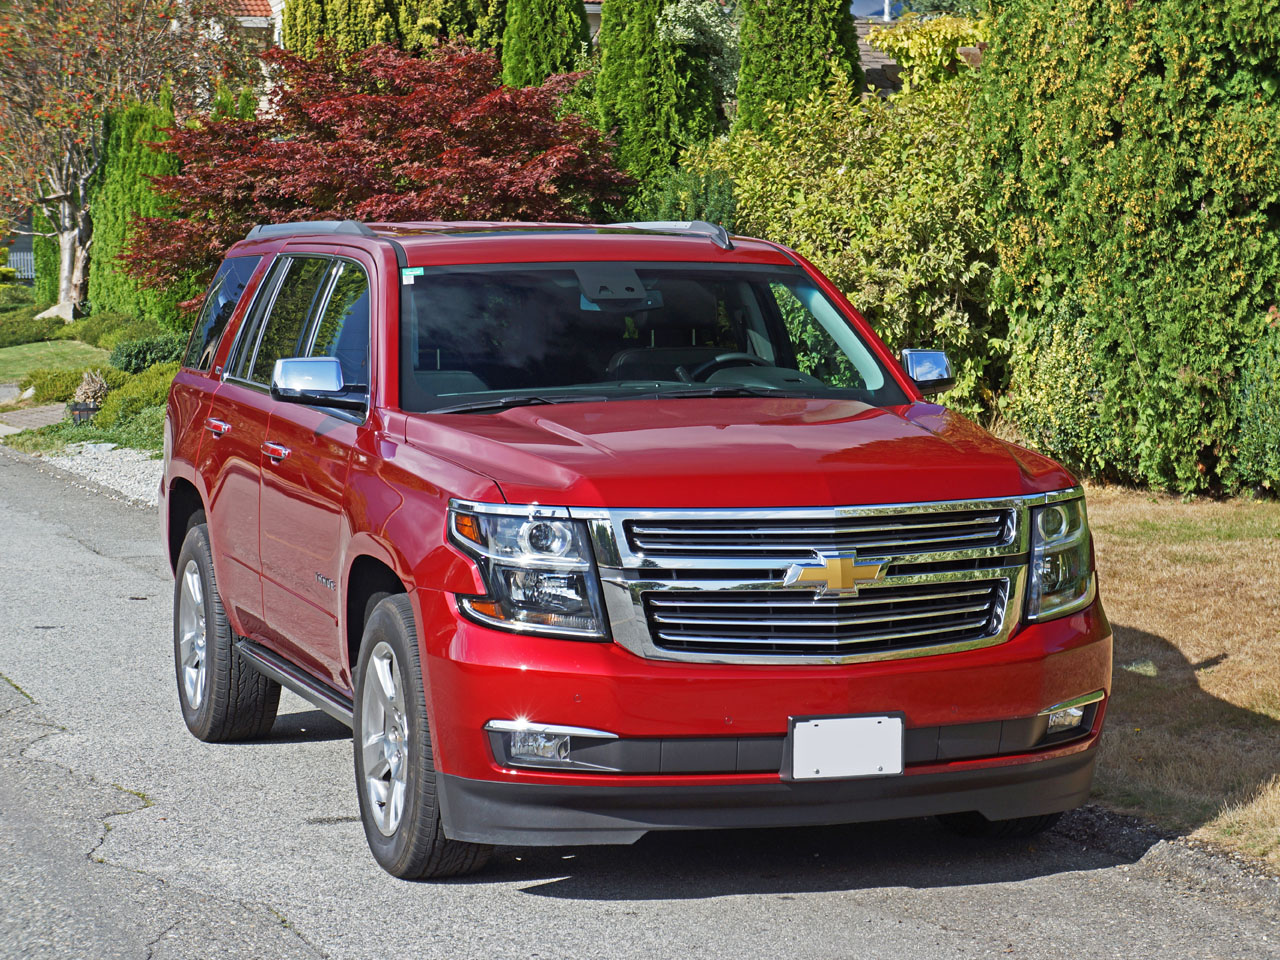 2015 Chevrolet Tahoe Ltz Road Test Review Carcostcanada Chevy